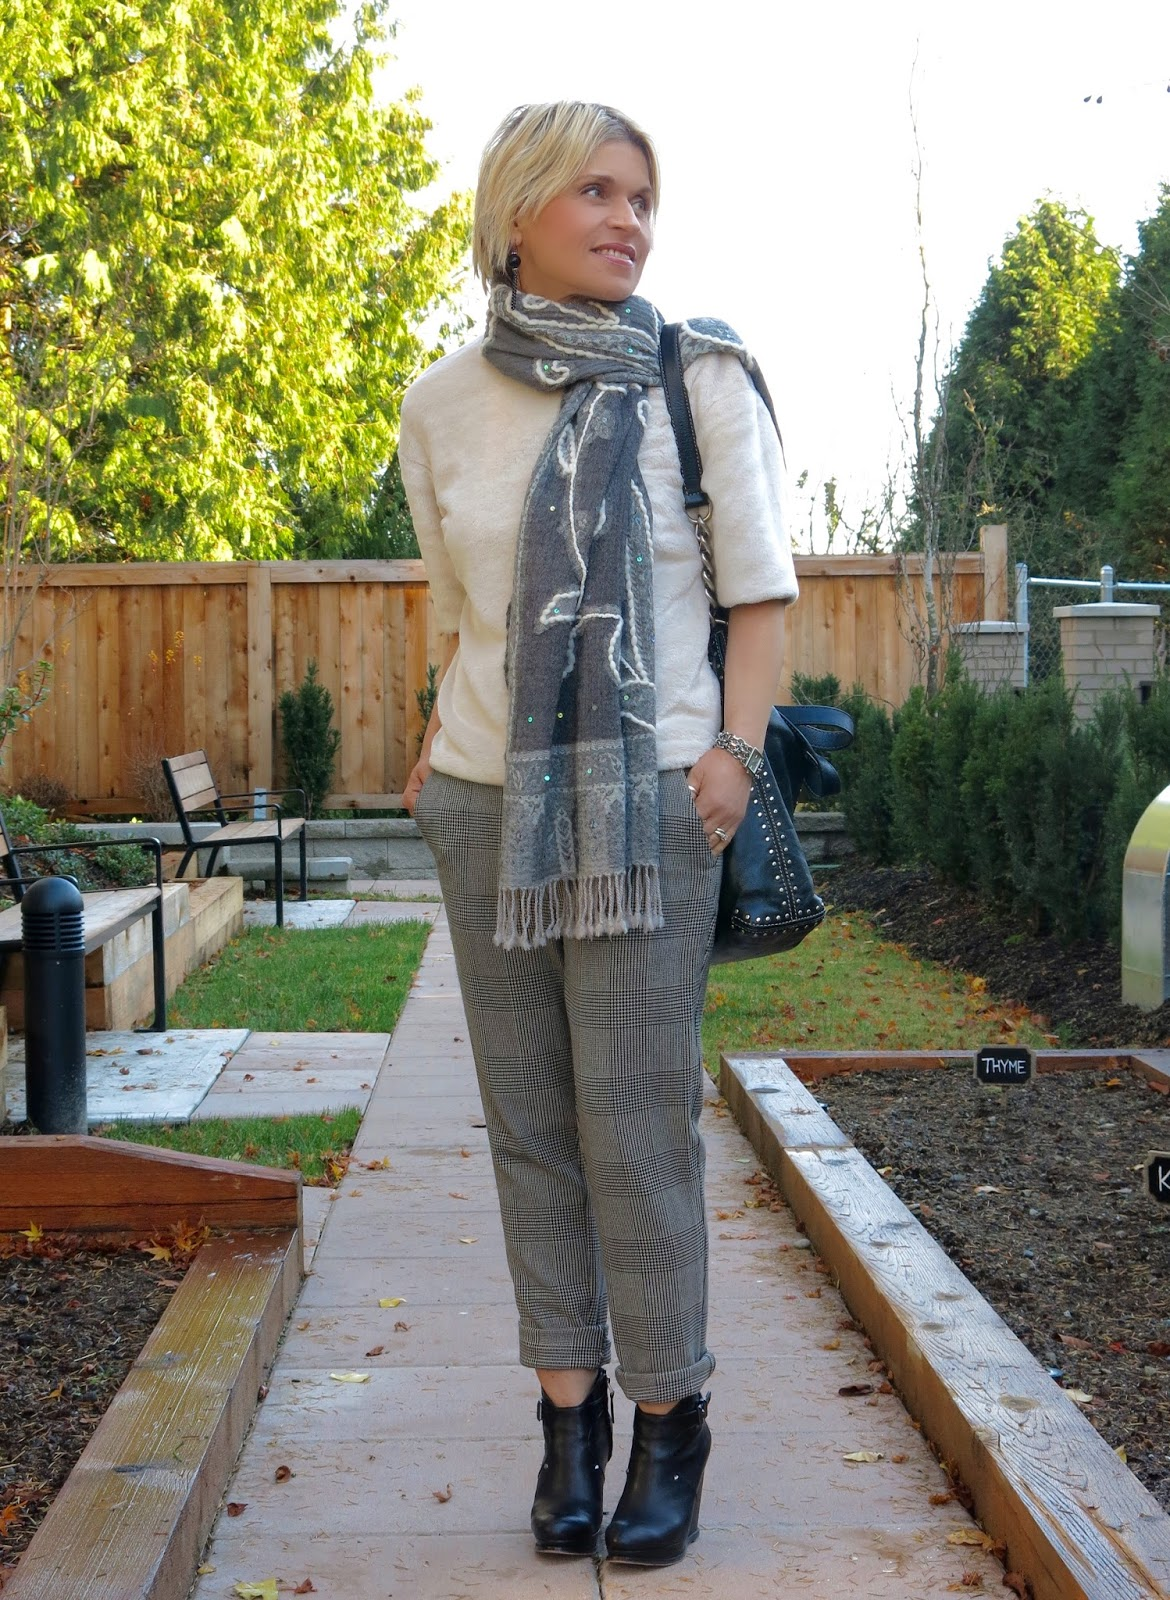 styling a plush tee with slouchy plaid pants, wedge booties, and an embroidered scarf